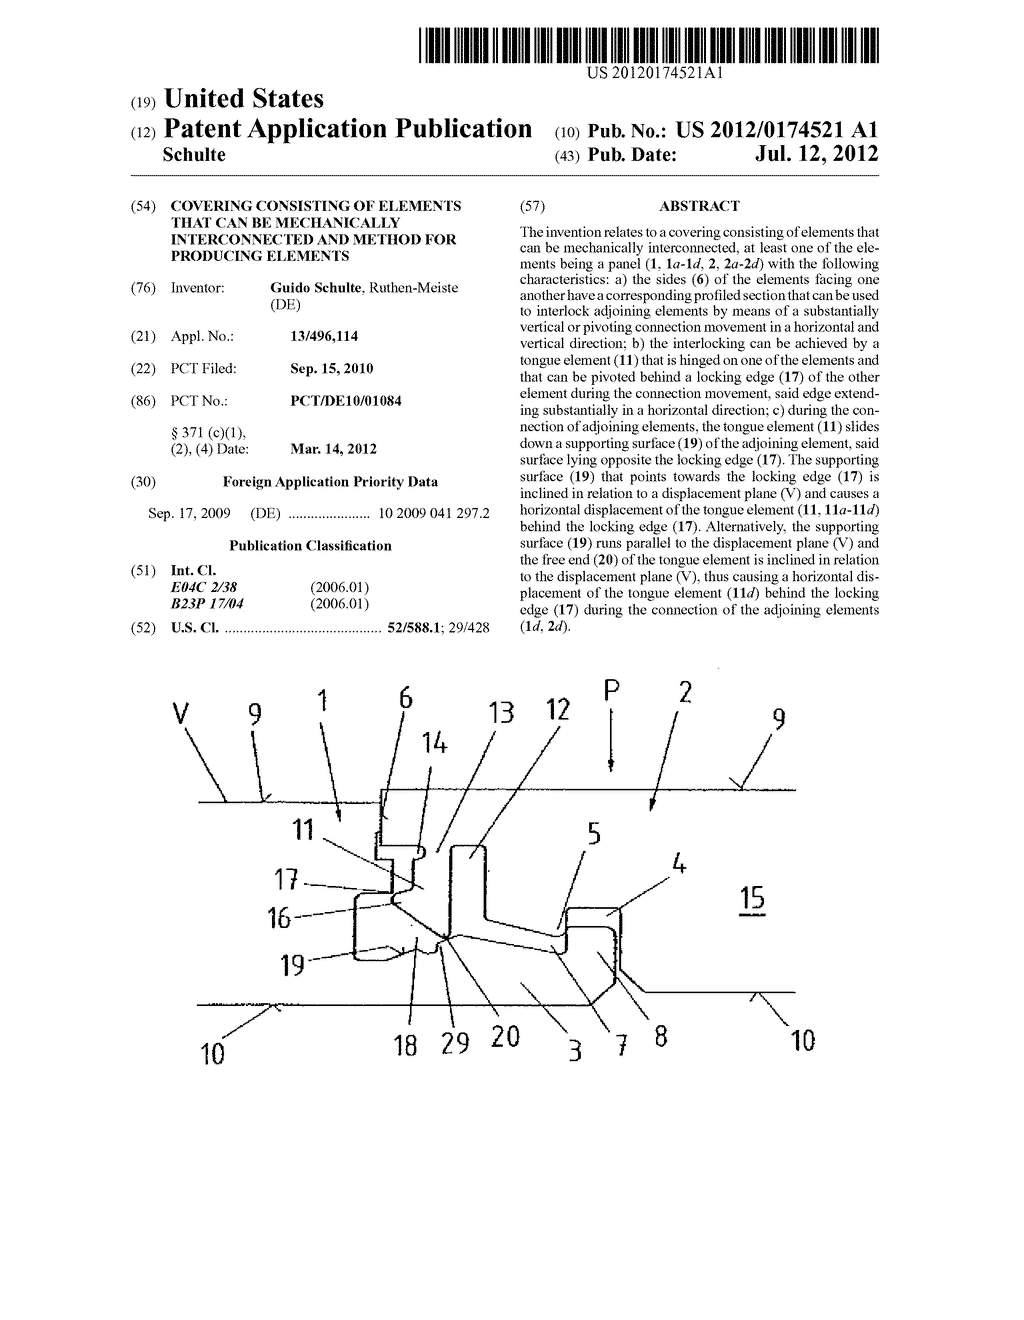 COVERING CONSISTING OF ELEMENTS THAT CAN BE MECHANICALLY INTERCONNECTED     AND METHOD FOR PRODUCING ELEMENTS - diagram, schematic, and image 01